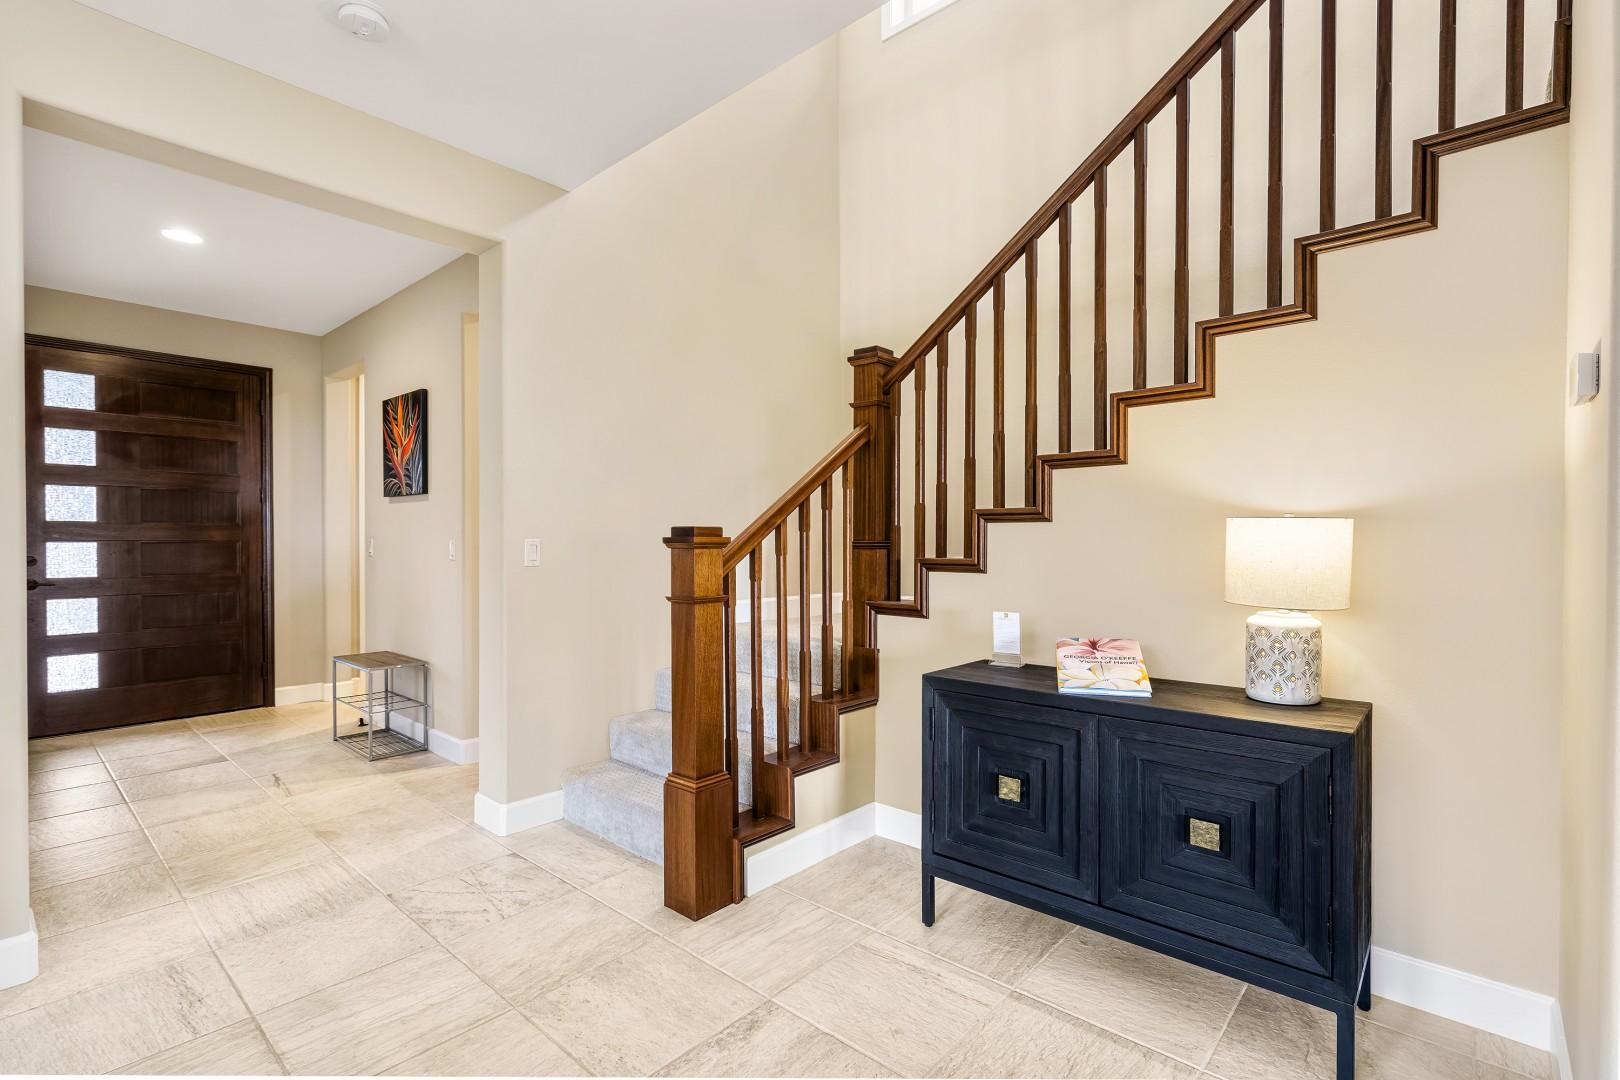 Stairs leading to the Upstairs Master bedroom, guest bedroom with 2 Twins, and upstairs Living room